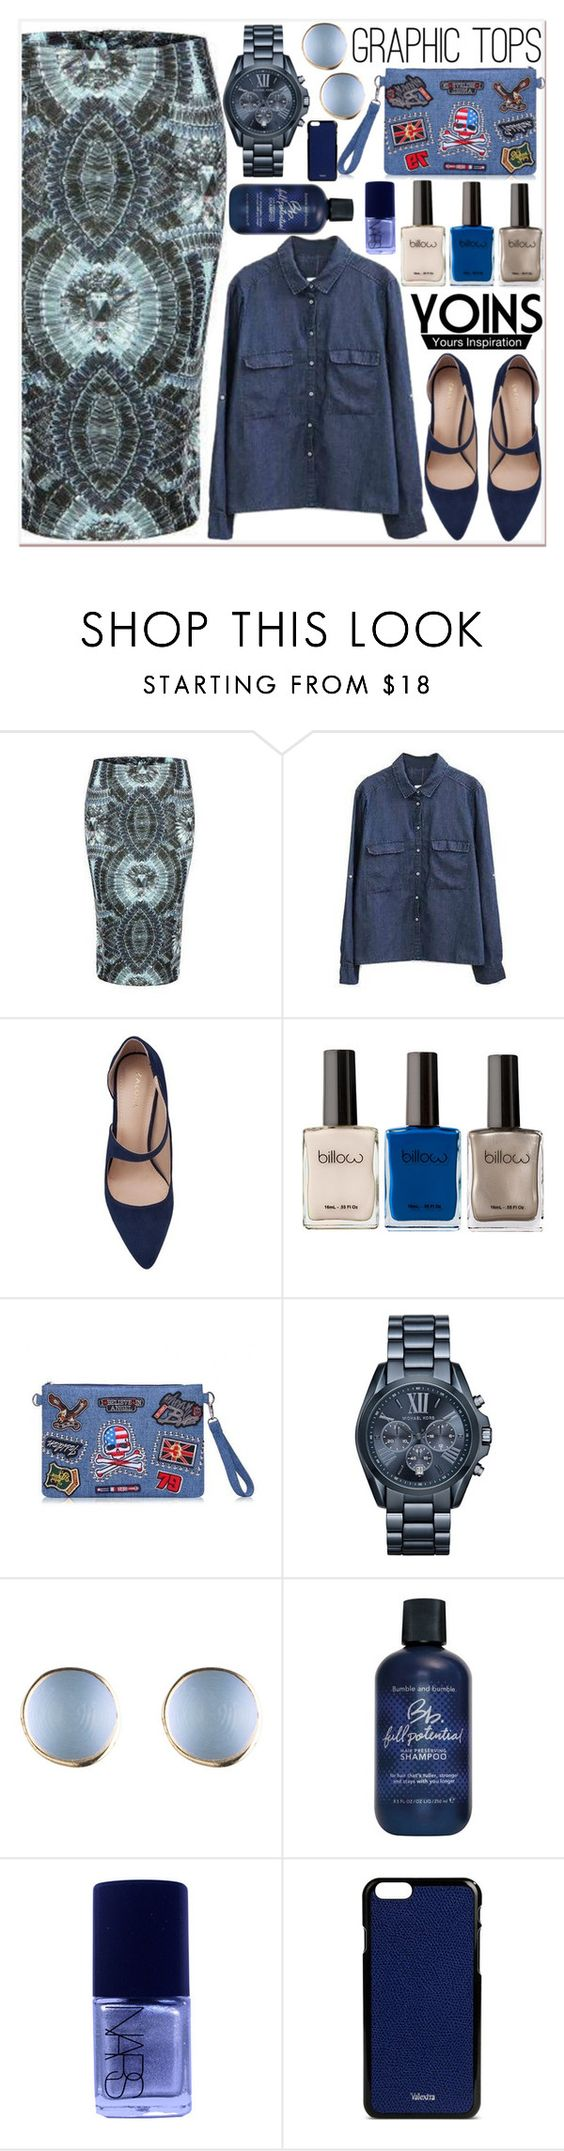 """Yoins 18"" by black-fashion83 ❤ liked on Polyvore featuring ZALORA, Michael Kors, Bumble and bumble, NARS Cosmetics, Valextra, women's clothing, women, female, woman and misses"